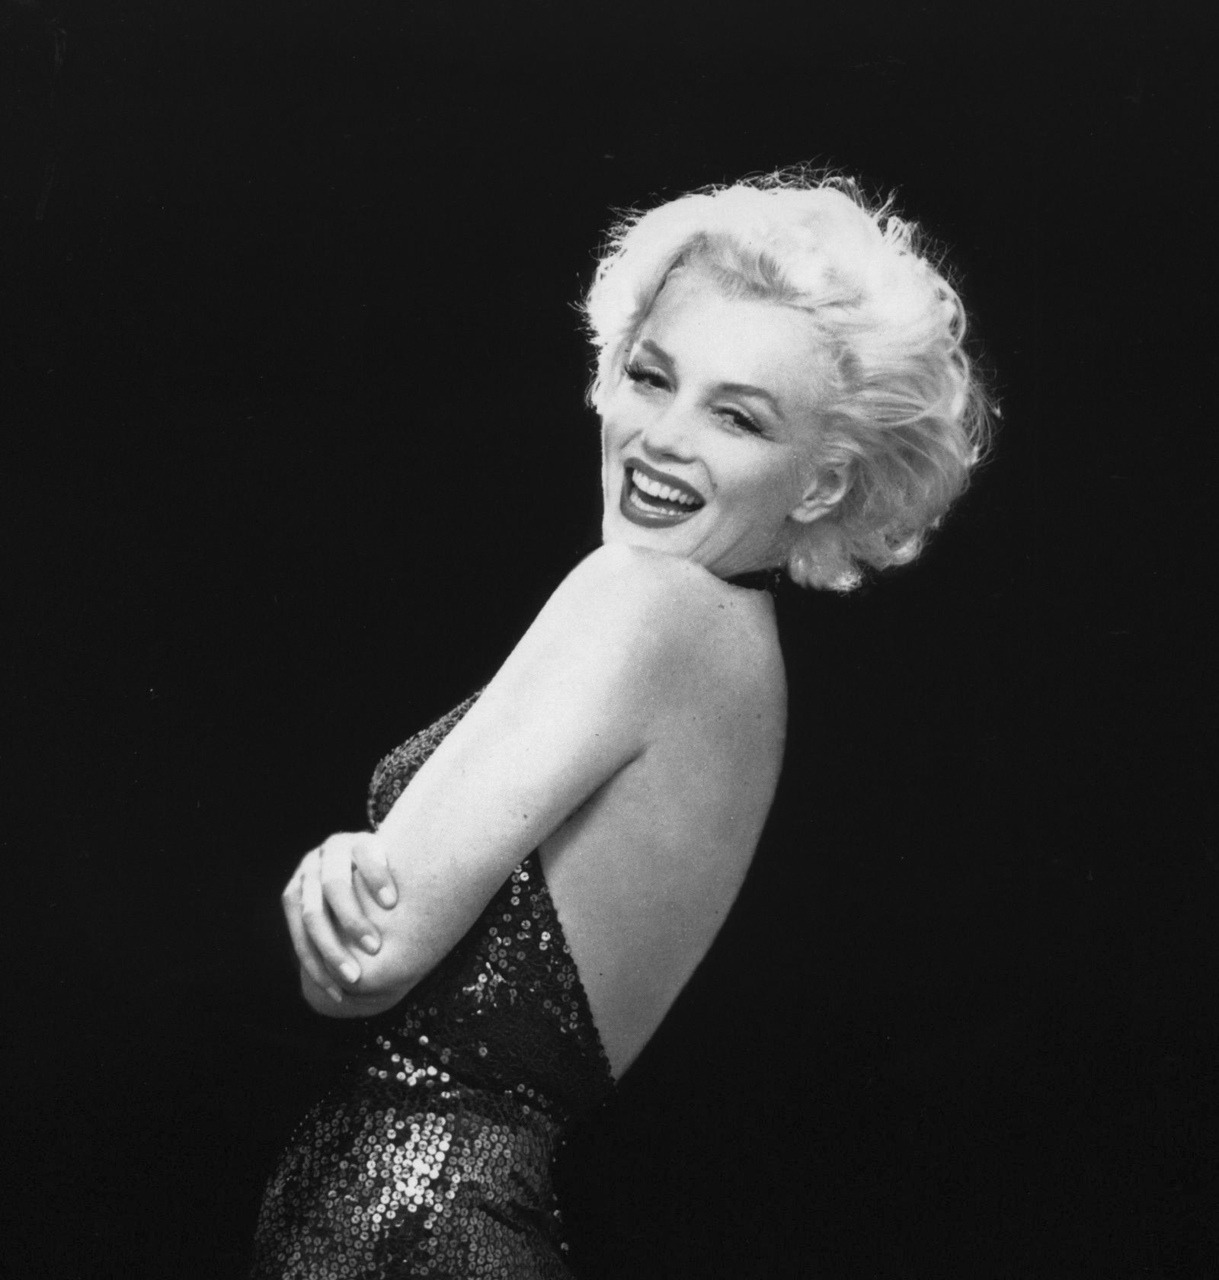 Marilyn Monroe by Richard Avedon, 1958